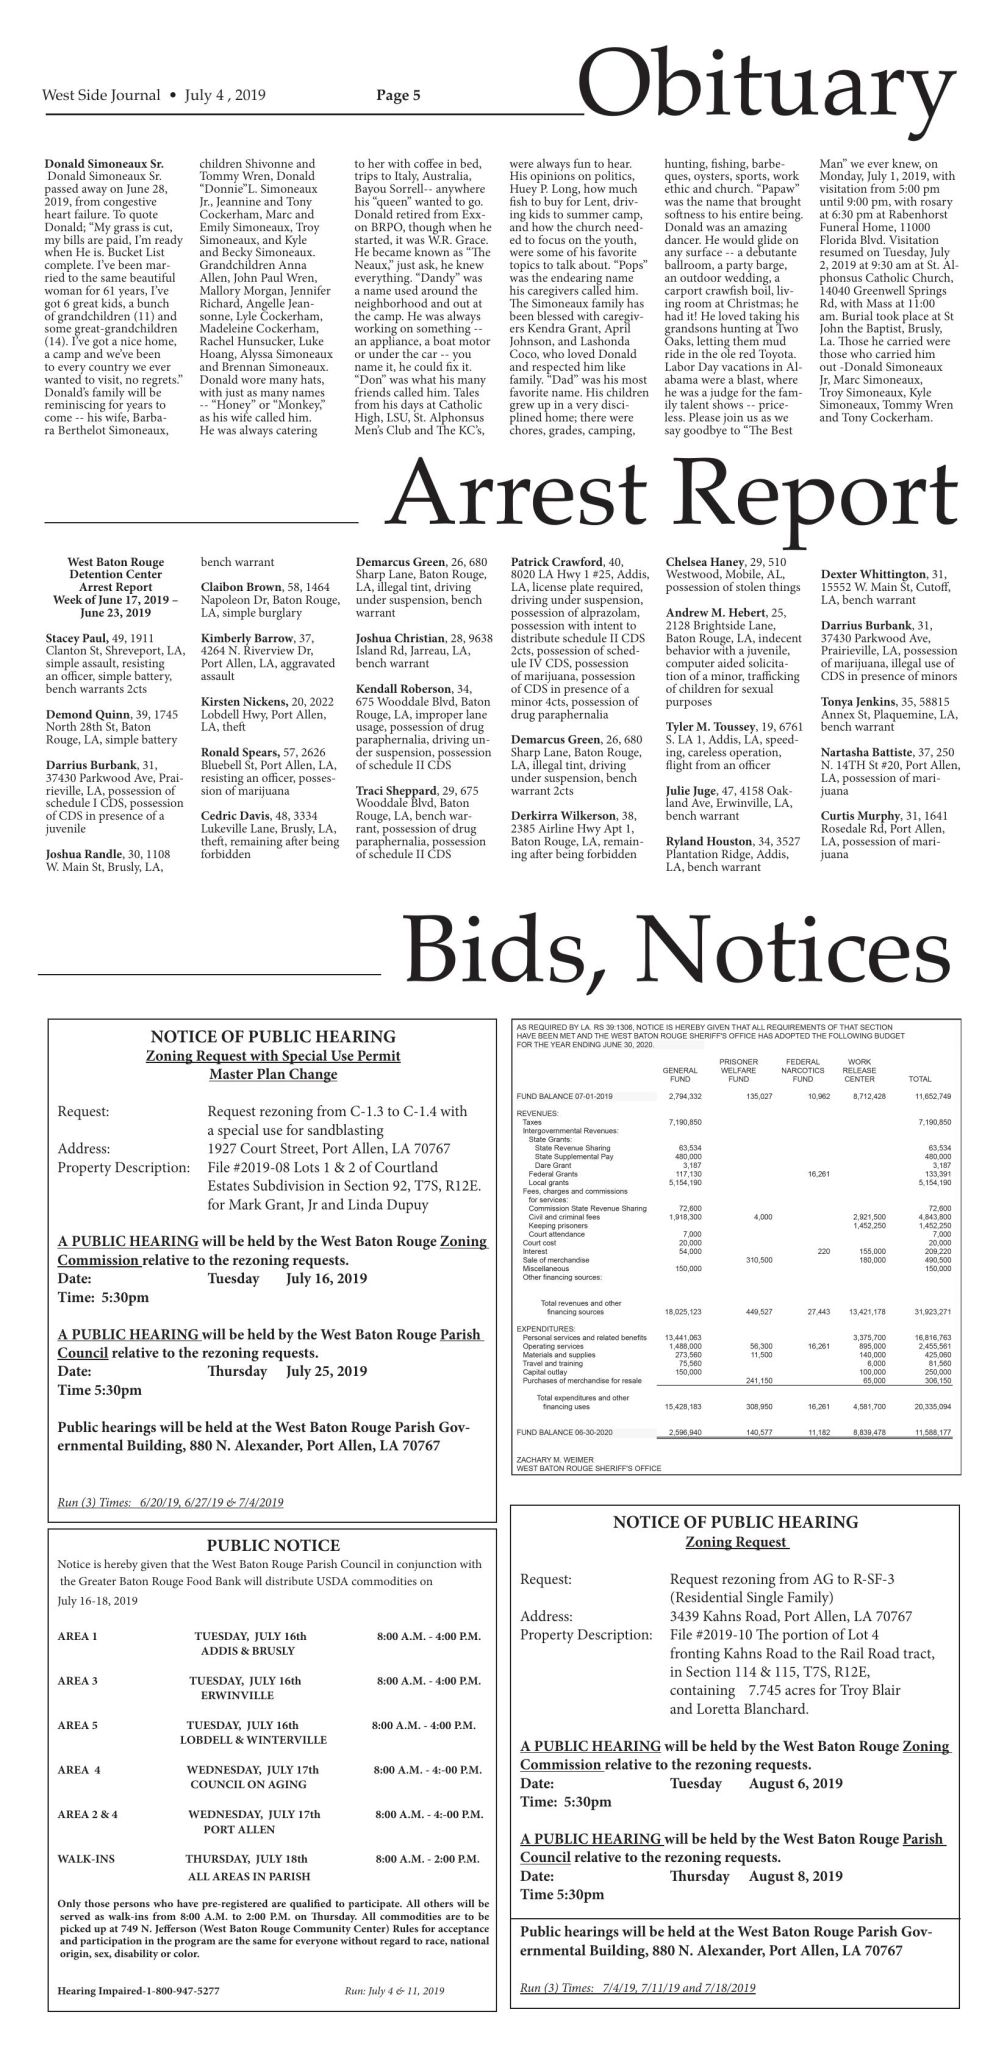 Bids and Notices, July 4, 2019